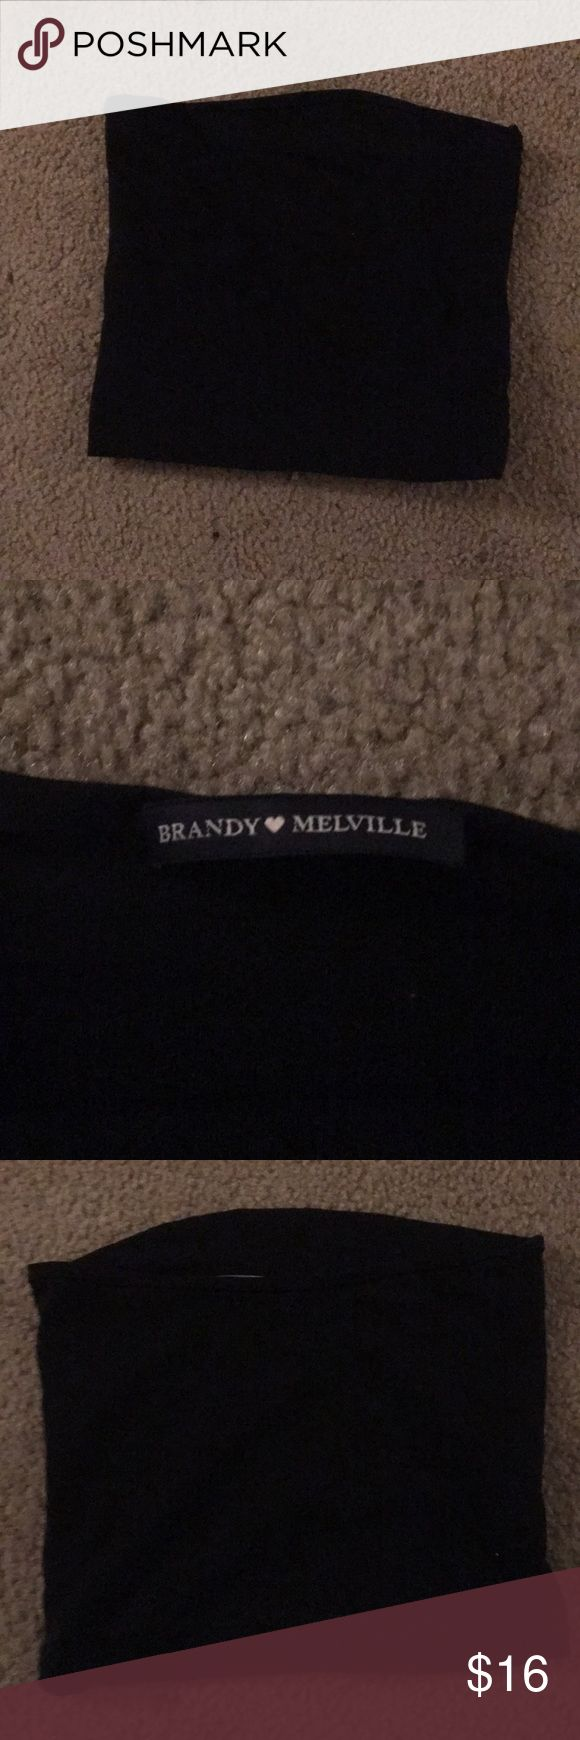 brandy melville black tube top from brandy melville, good quality, never been worn, selling because i bought 2 on accident Brandy Melville Tops Crop Tops